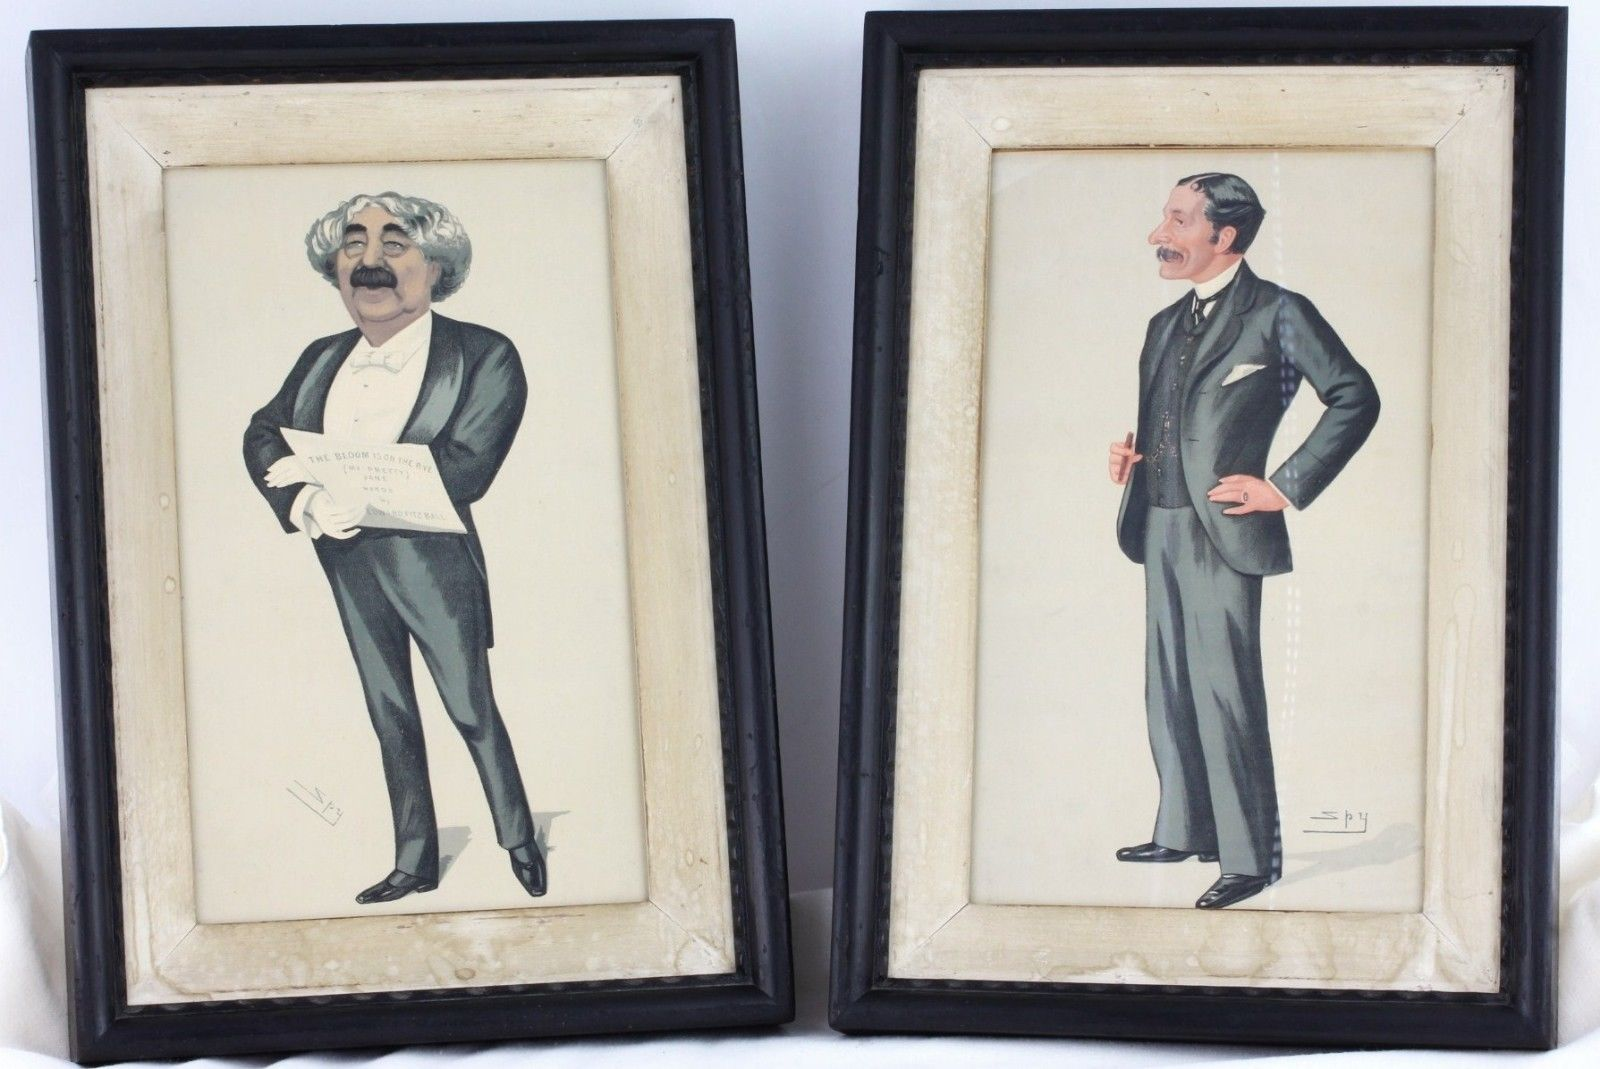 """1890 Vanity Fair SPY Lithograph Caricature Prints Framed """"Men of the Day"""""""